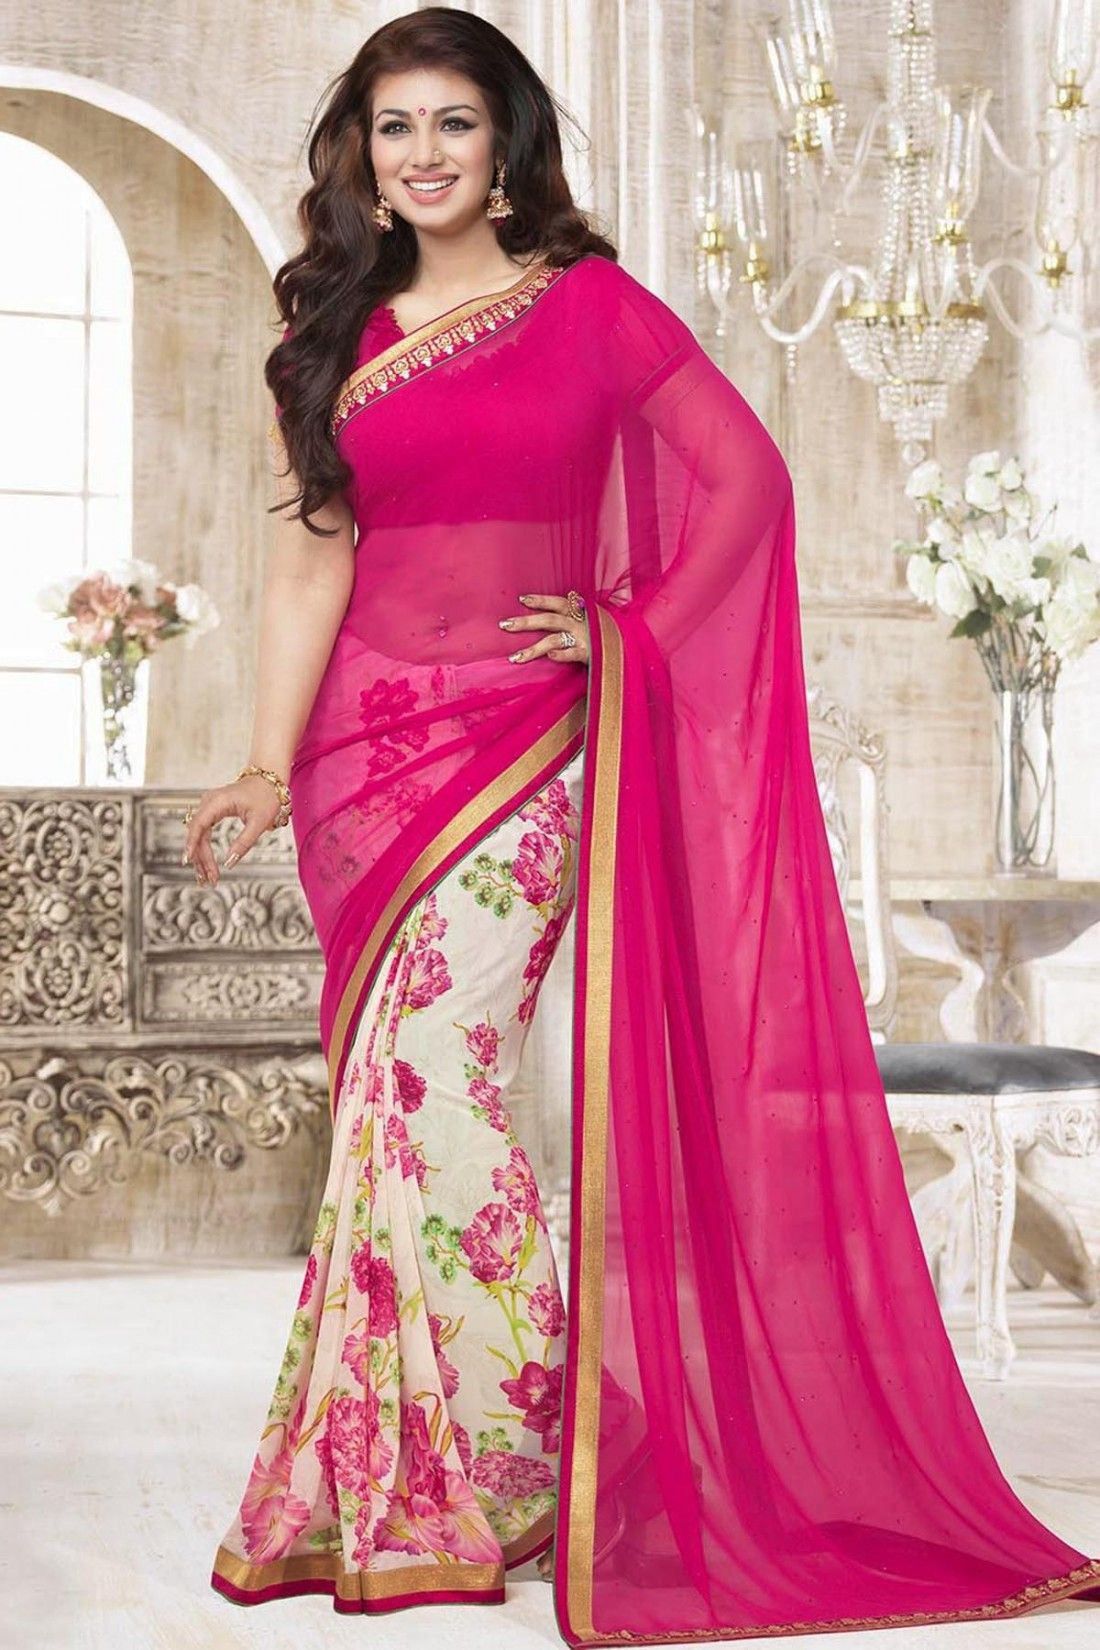 Black colour saree images ayesha takia saree pink and off white faux georgette casual saree